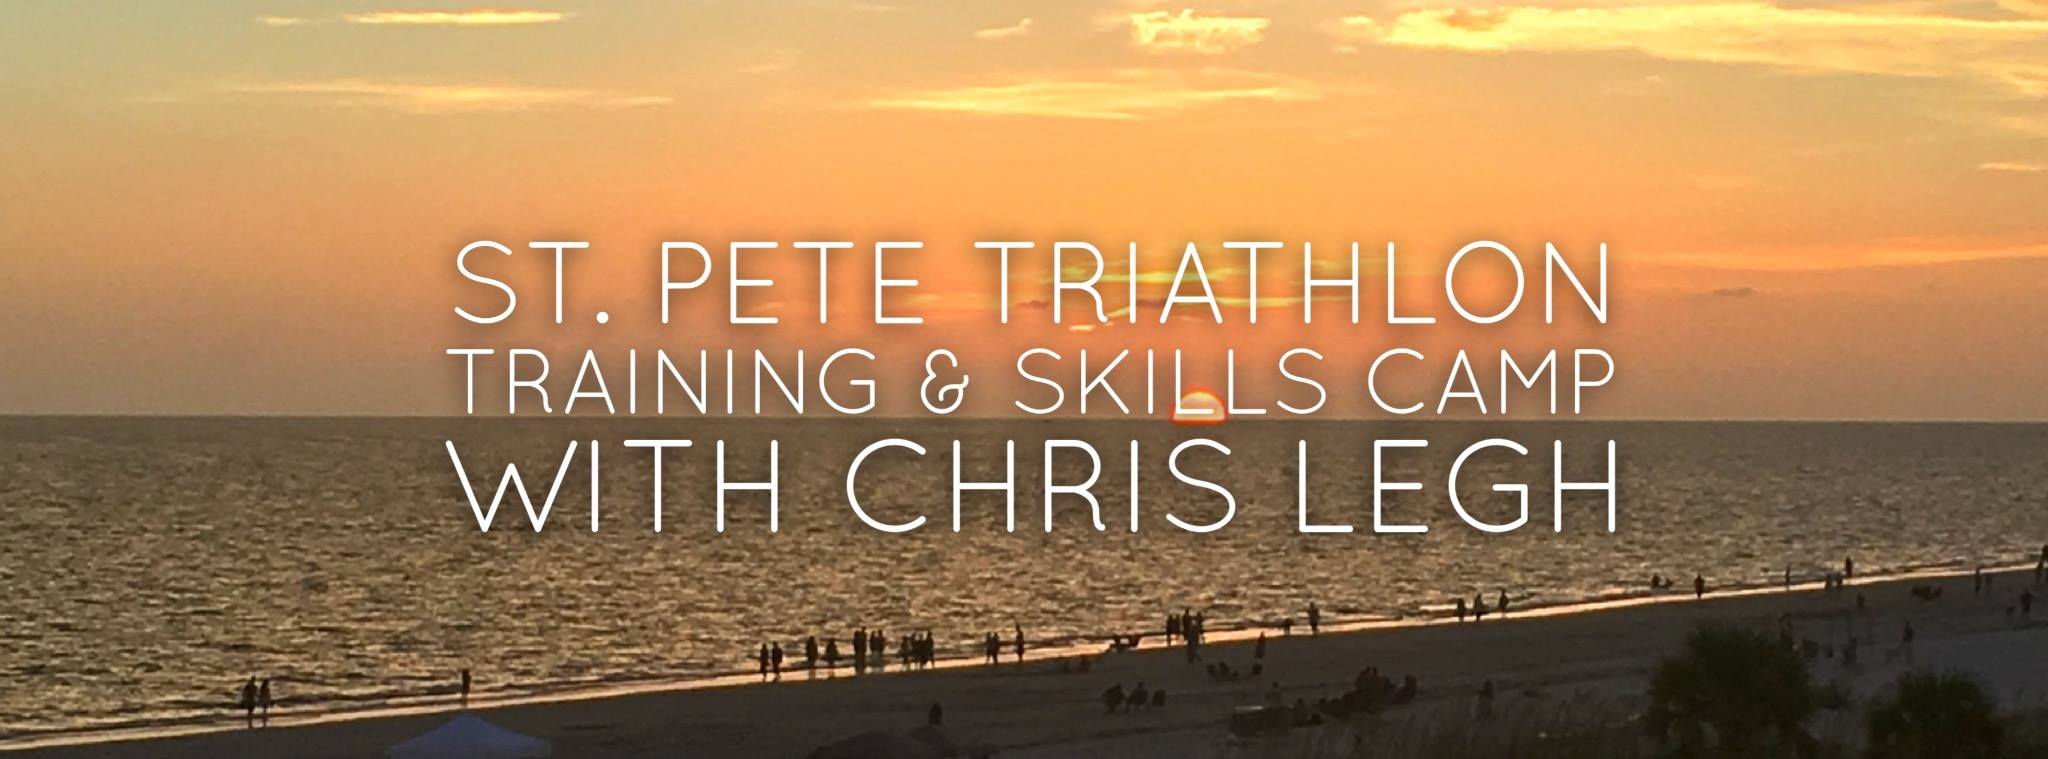 St. Pete Triathlon Training and Skills Camp